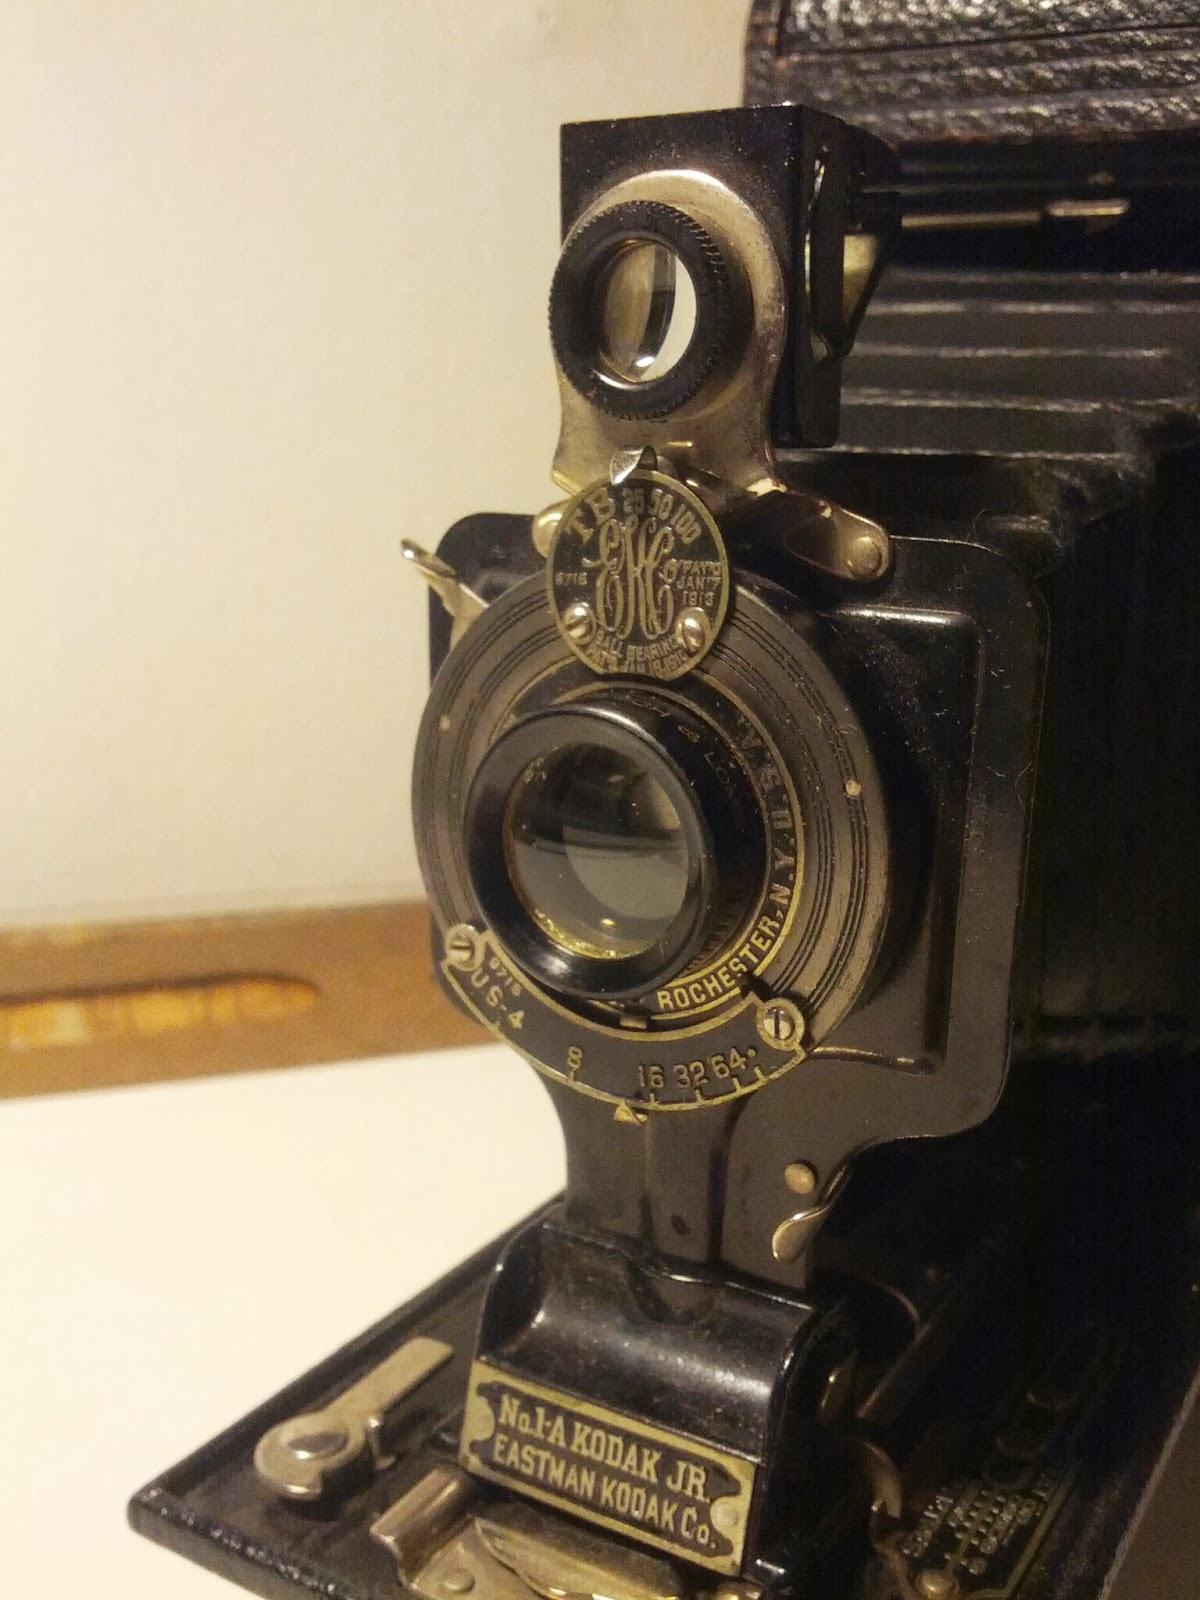 Kodak made this model for like twenty years, in a variety of lenses and shutters.  This one has a Rapid Rectilinear lens by Bausch & Lomb